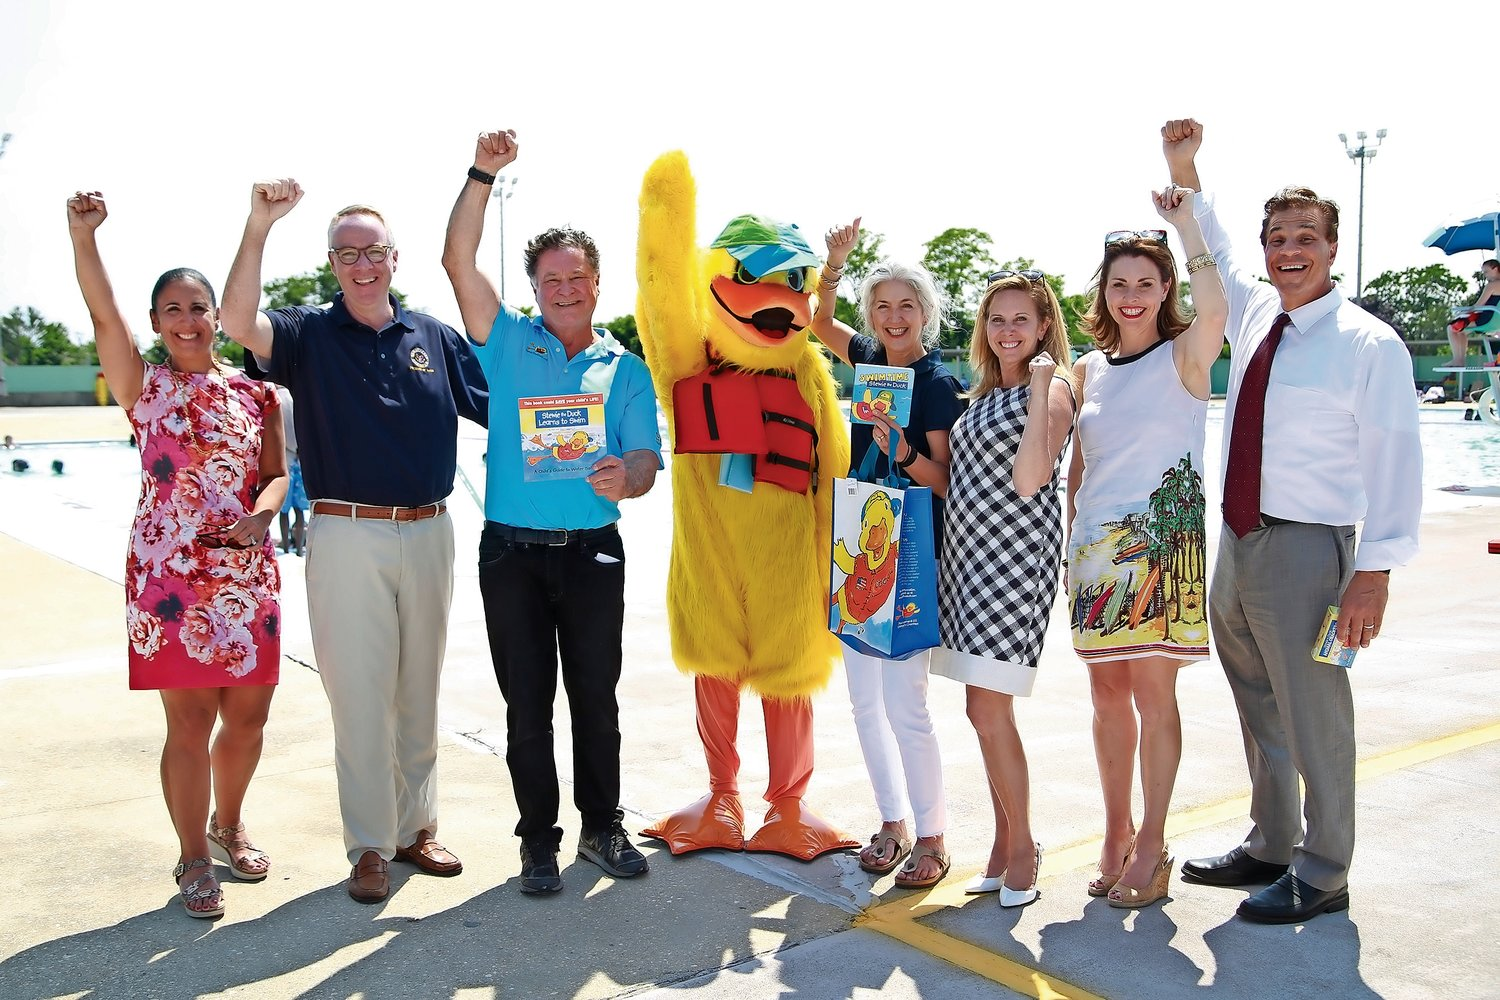 Hempstead officials, Stew and Kim Leonard and Stewie the Duck gathered at the Newbridge Road Park Pool on June 28 to promote pool safety.